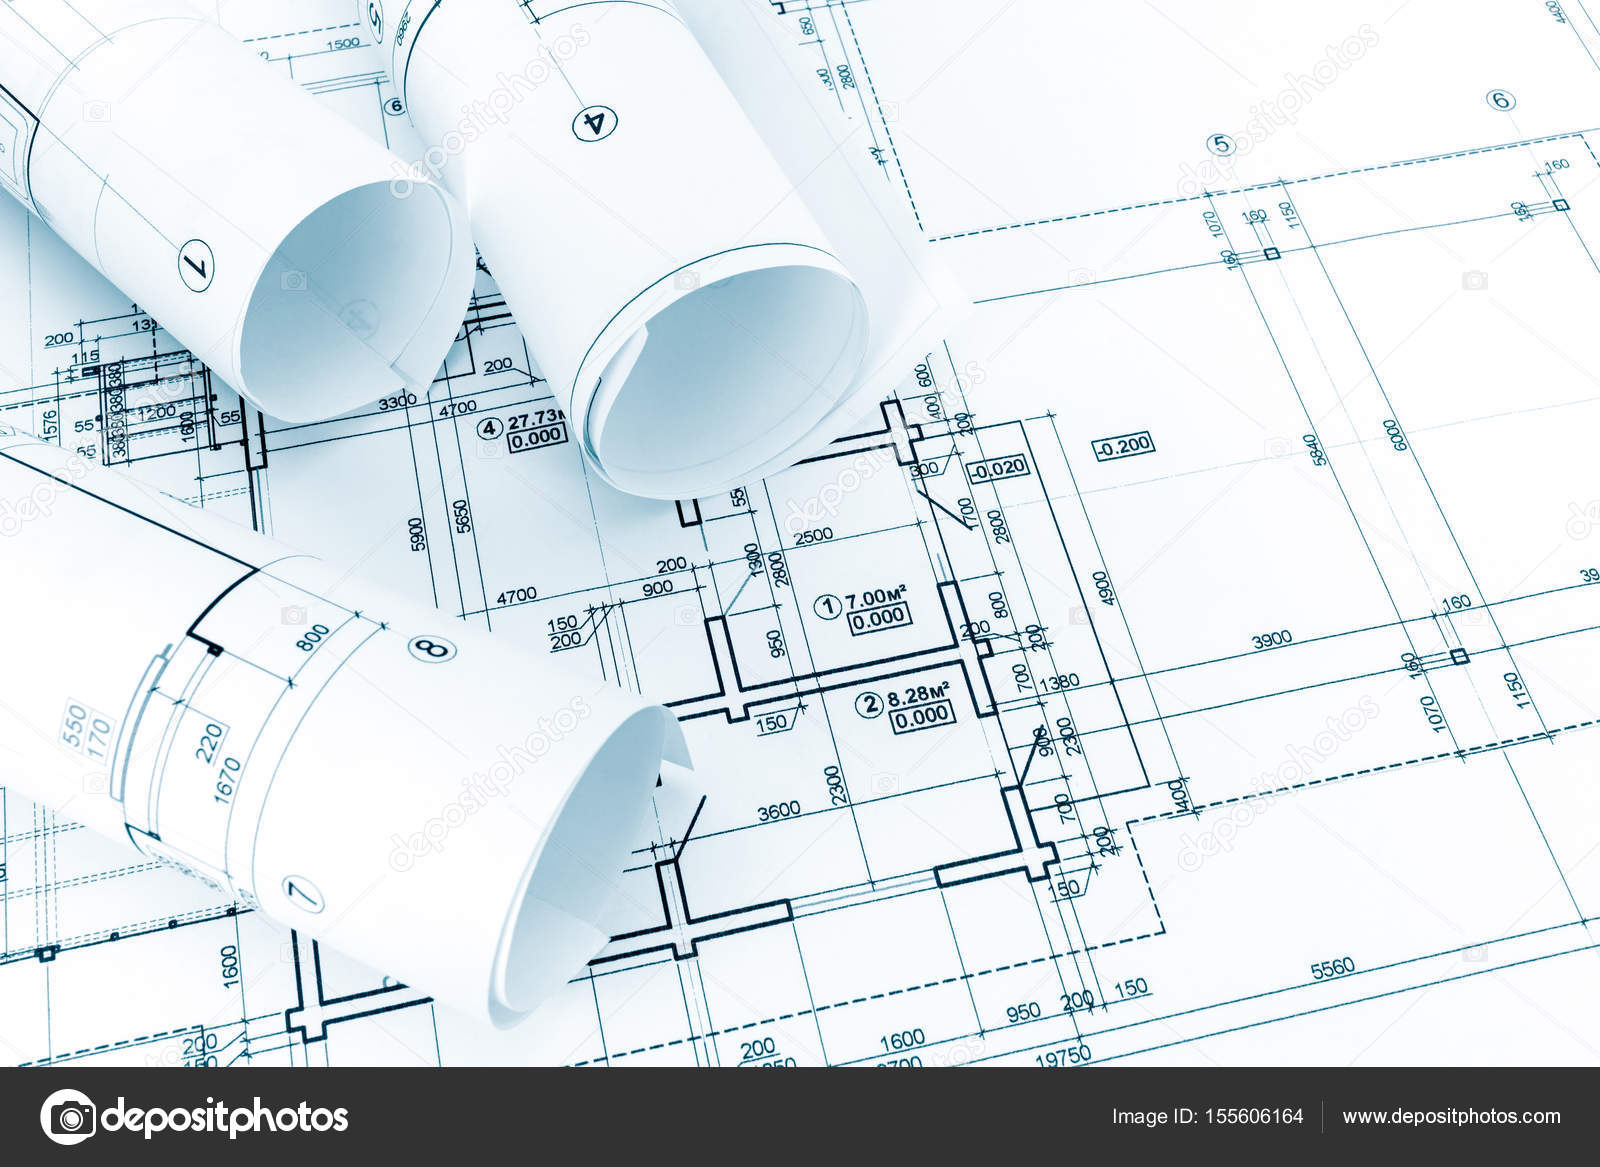 Architectural drawings and blueprint rolls architects worktable architectural drawings and blueprint rolls architects work table photo by mrtwister malvernweather Images